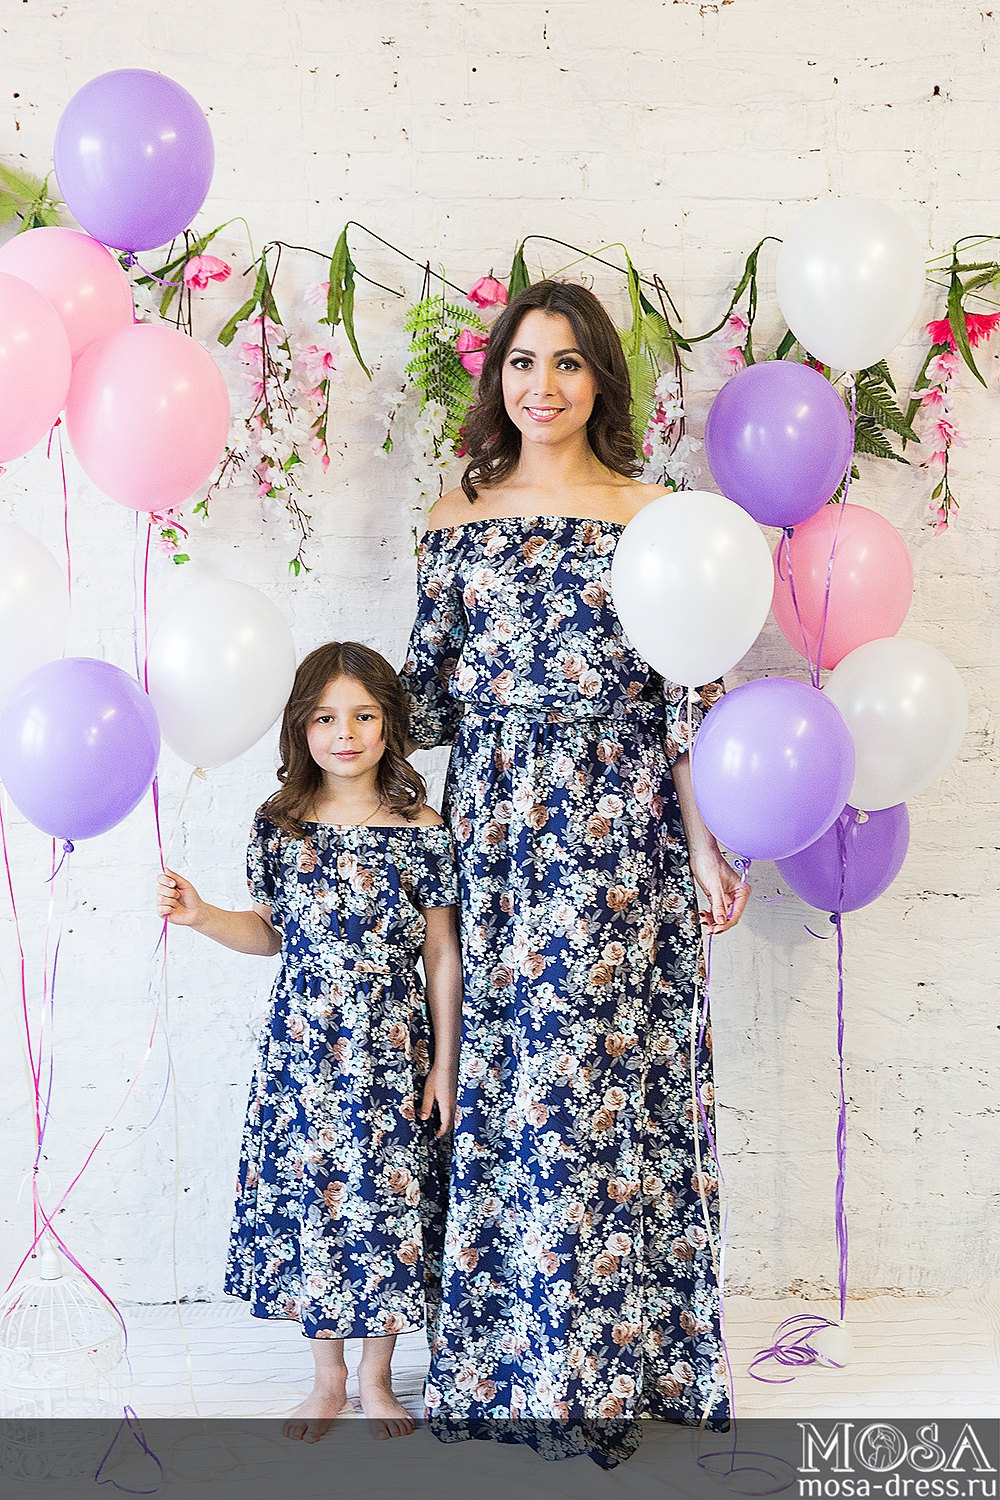 ���� �������. Family Look �� Mosa-Dress: ����+�����, ����+��� � ��� ������ - ������ ���� �������! � ��� �� �������� ��������� ��� �������. �������. ���� 14.